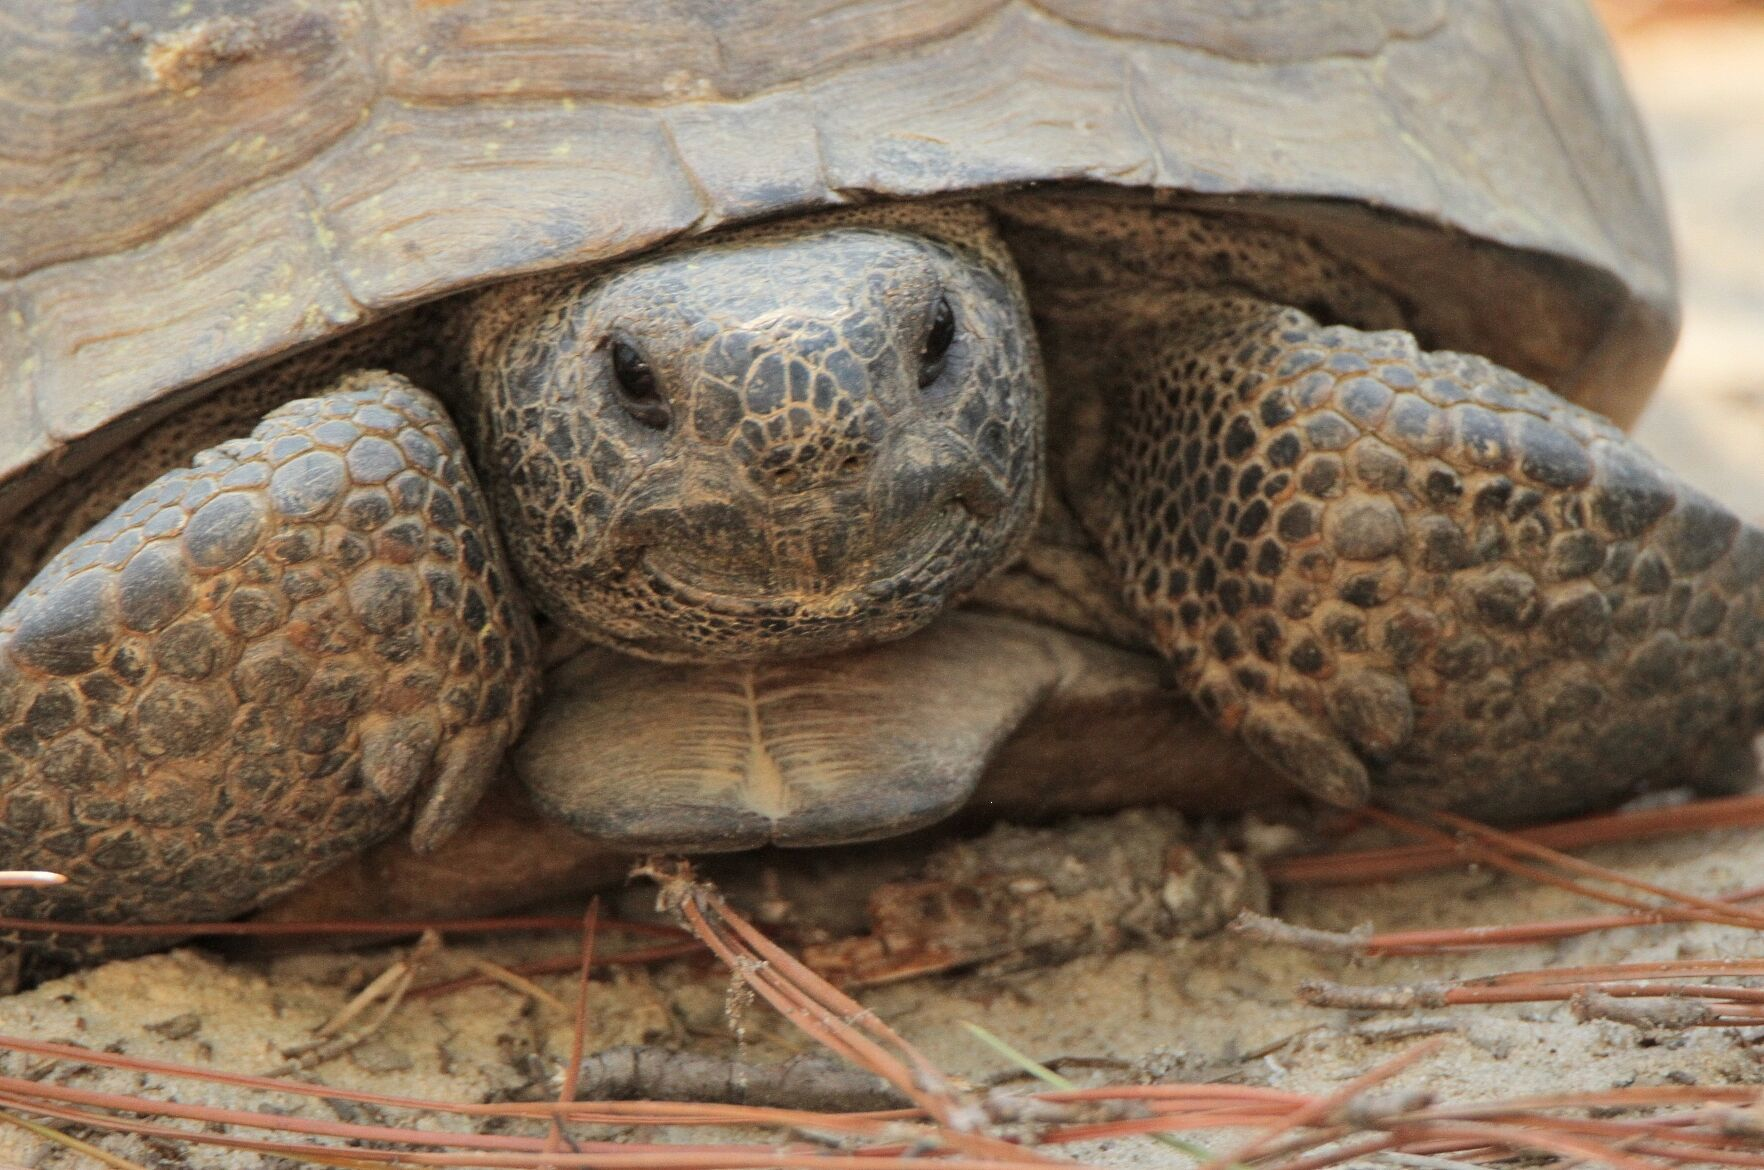 Gopher tortoises are considered a keystone species because they dig burrows that provide shelter for approximately 350 other species.